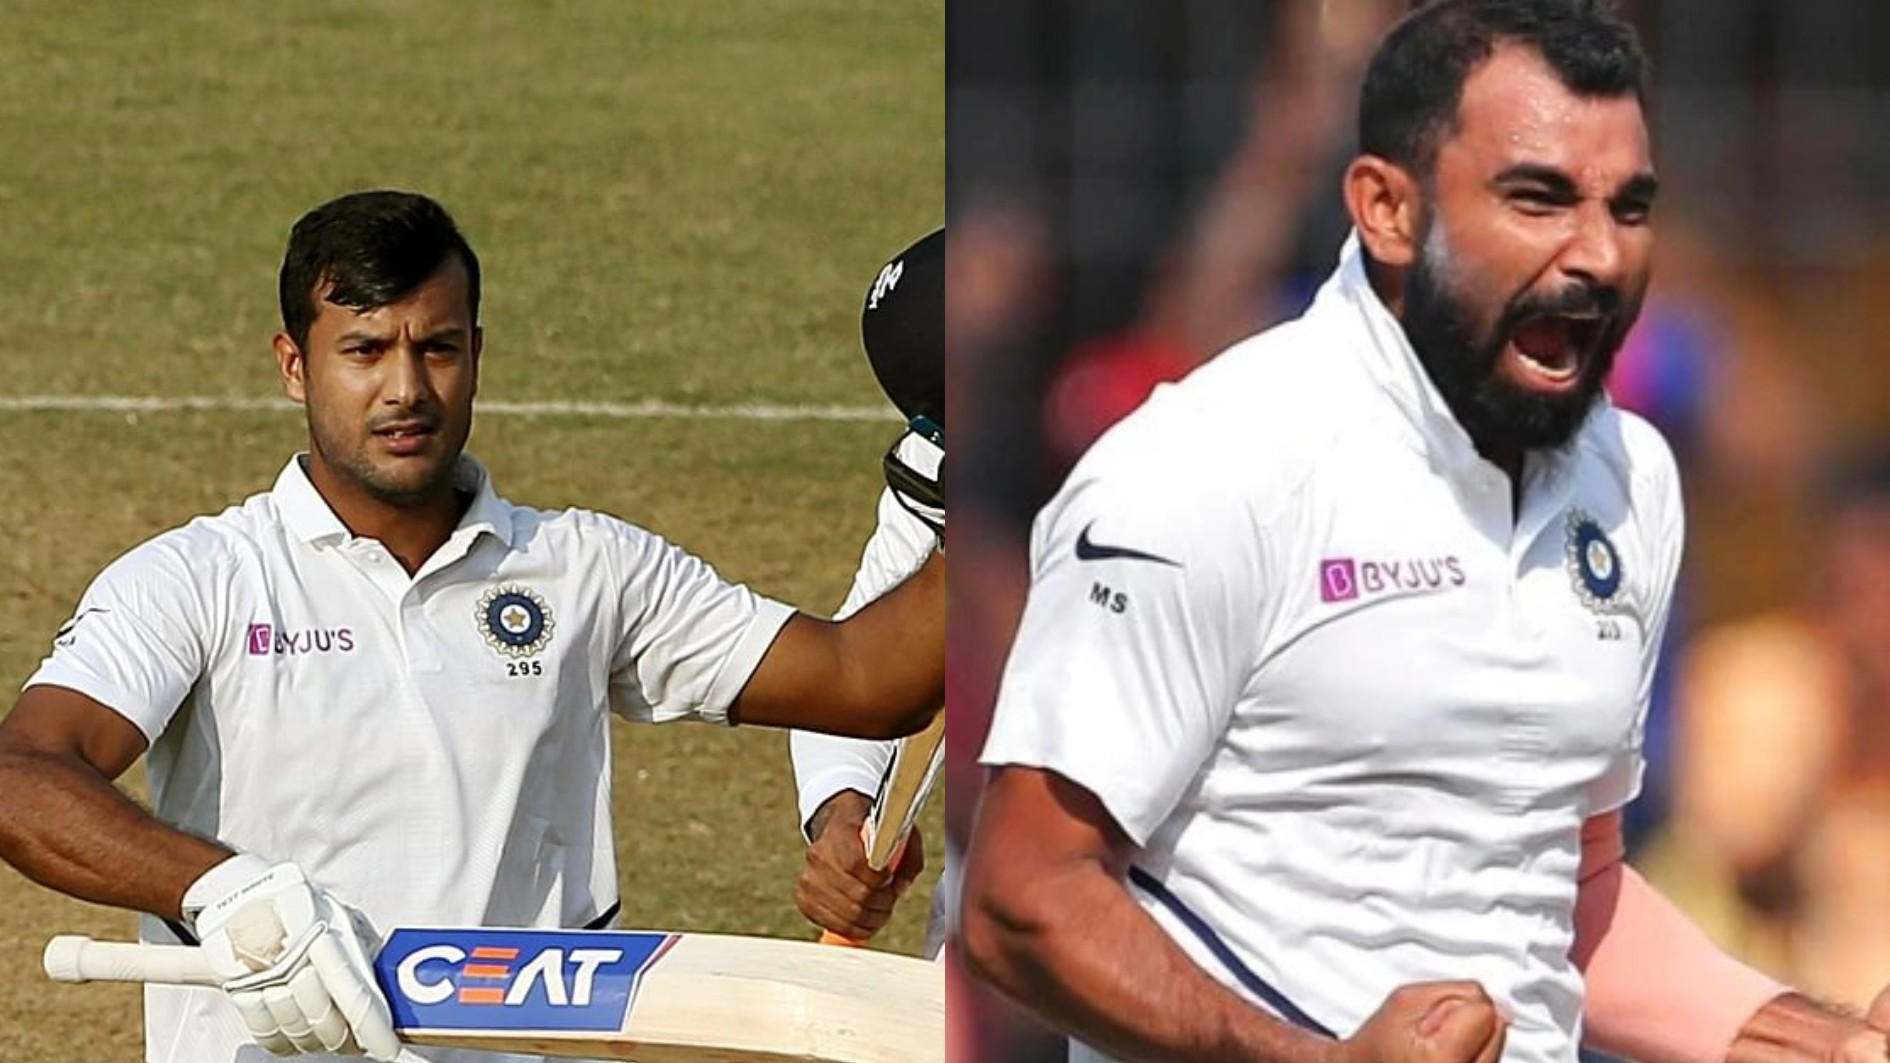 IND v BAN 2019: Mohammad Shami and Mayank Agarwal attain career-best ICC rankings after Indore Test heroics